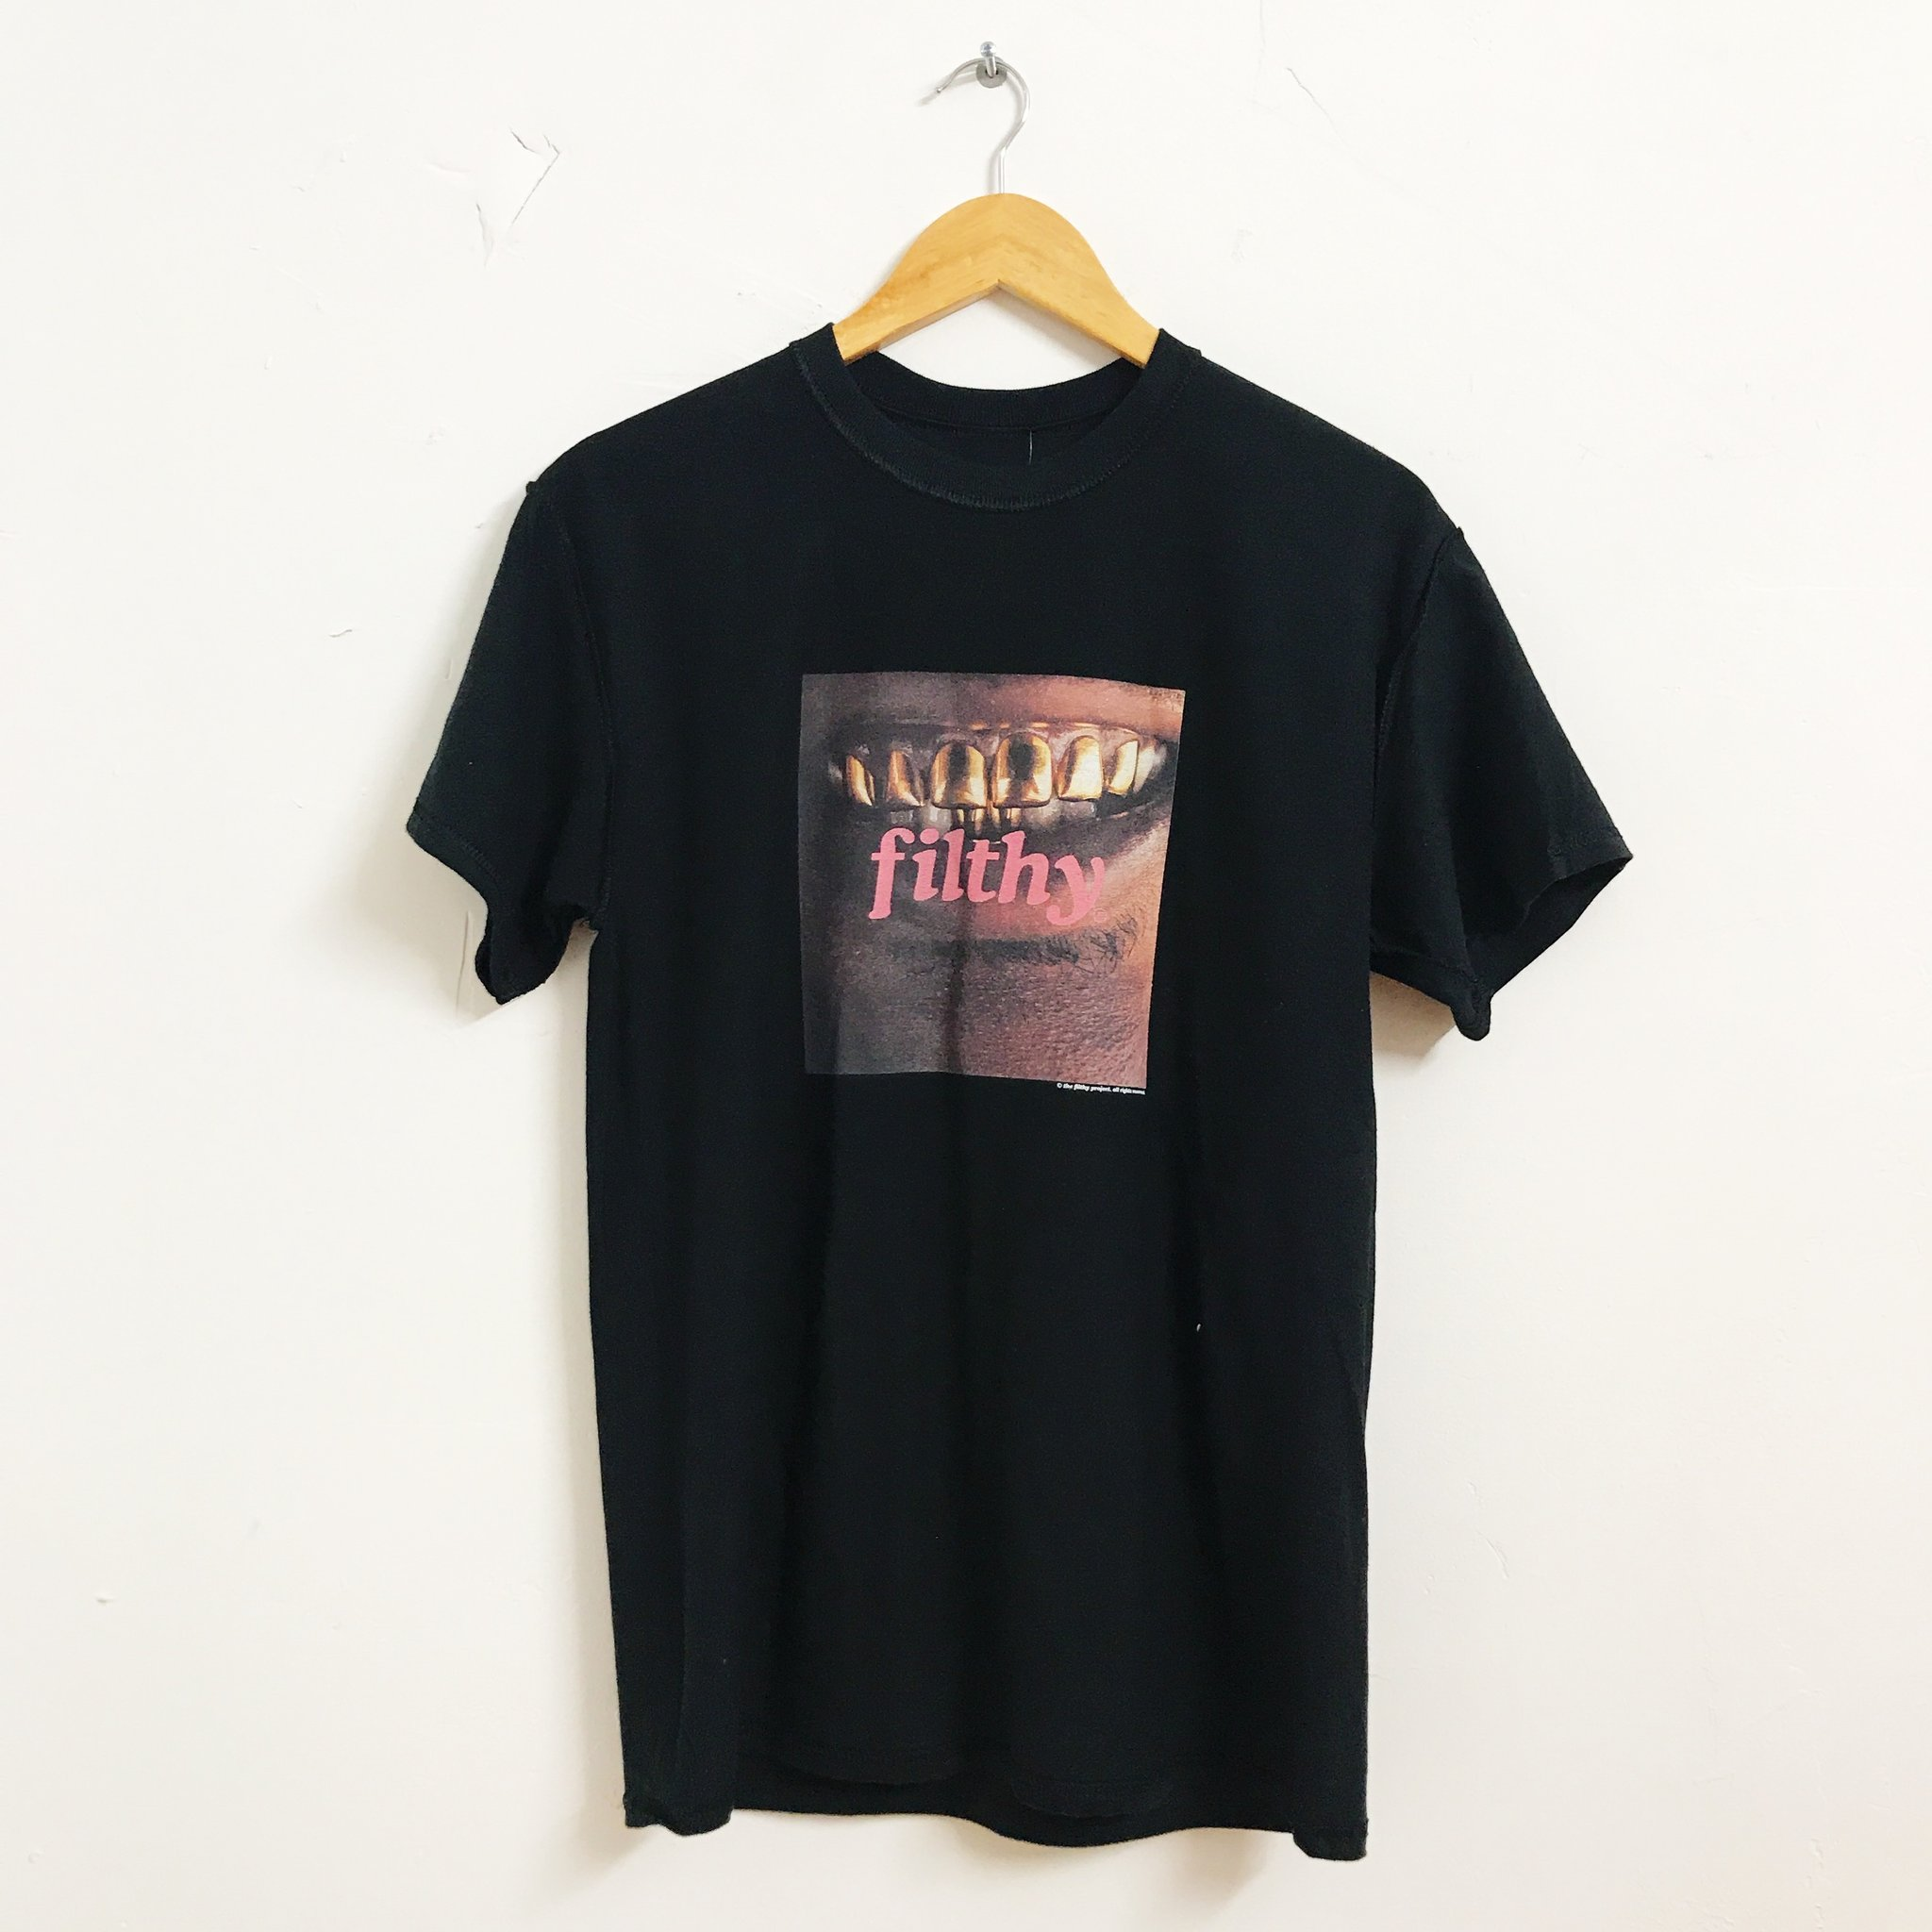 5. Eric's Gold Teeth Tee - Brand: Very Filthy ShitPrice: $25.00